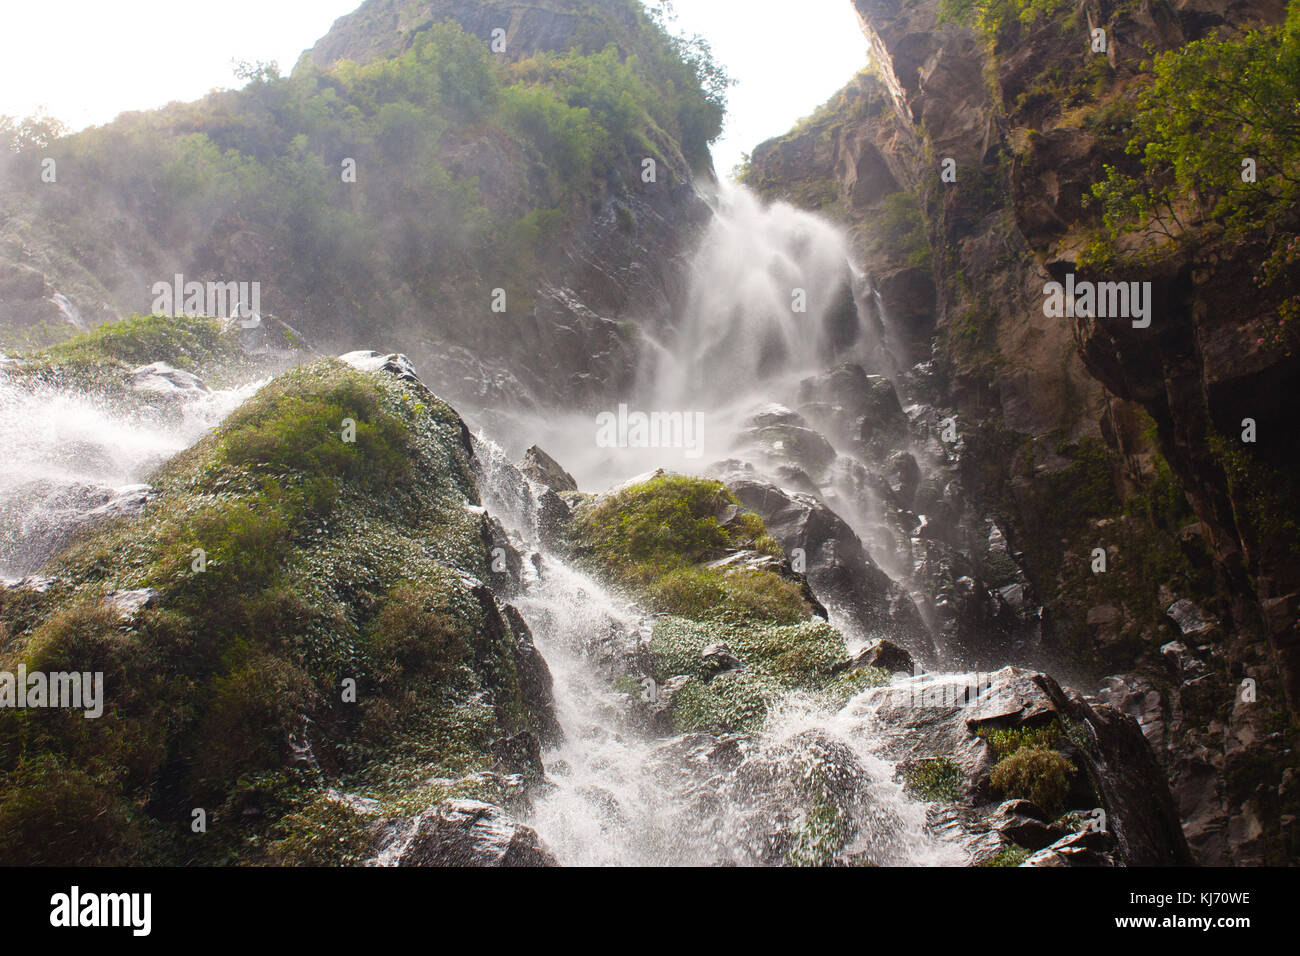 A waterfall along the dirty road to Manang in the Himalayan mountains, Marsyangdi valley. Nepal - Stock Image